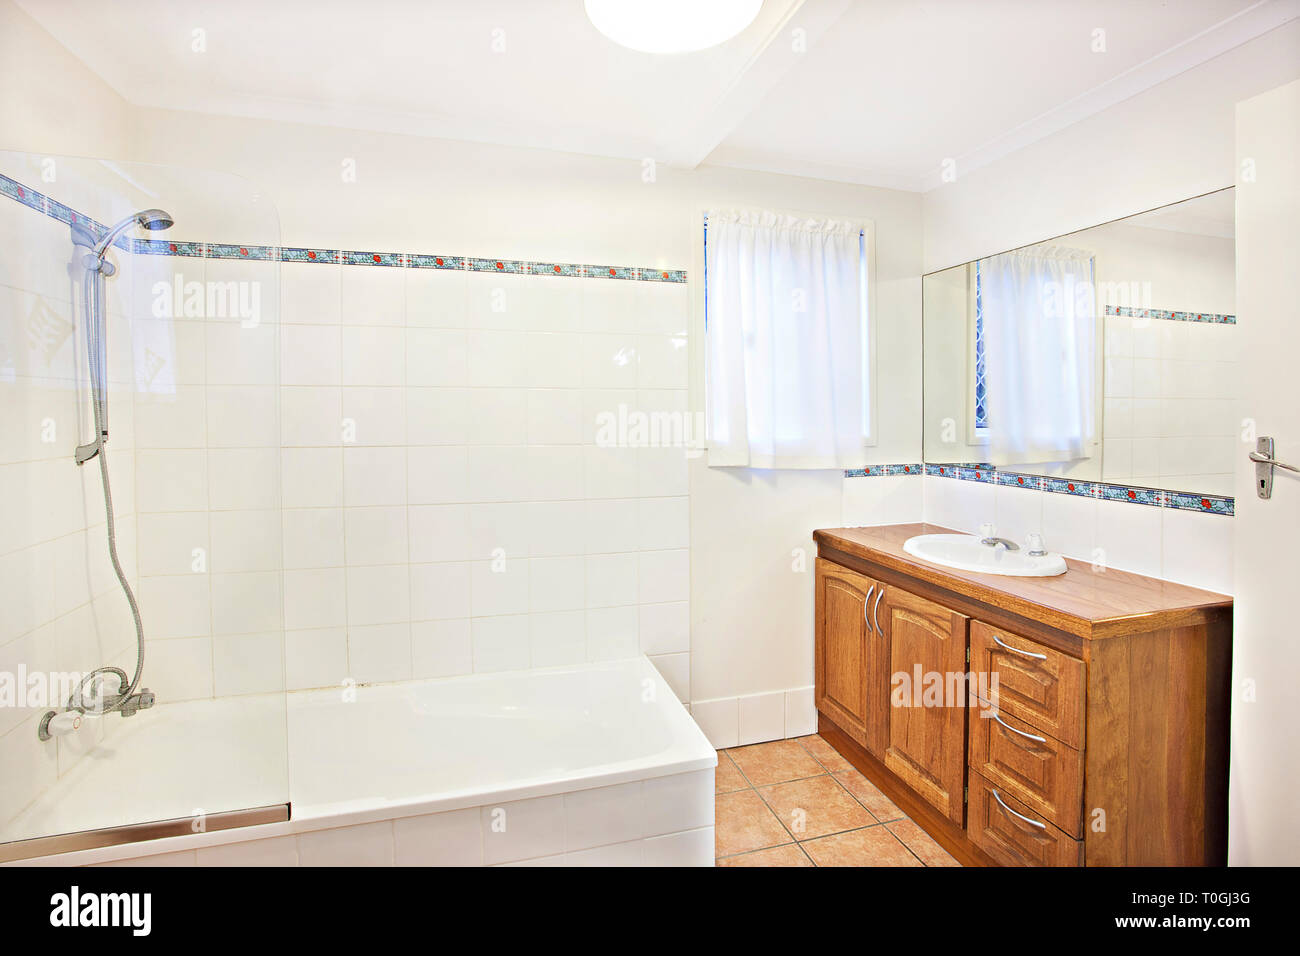 Small Bathroom With Fitted Shower Over The Bath Tub With ...